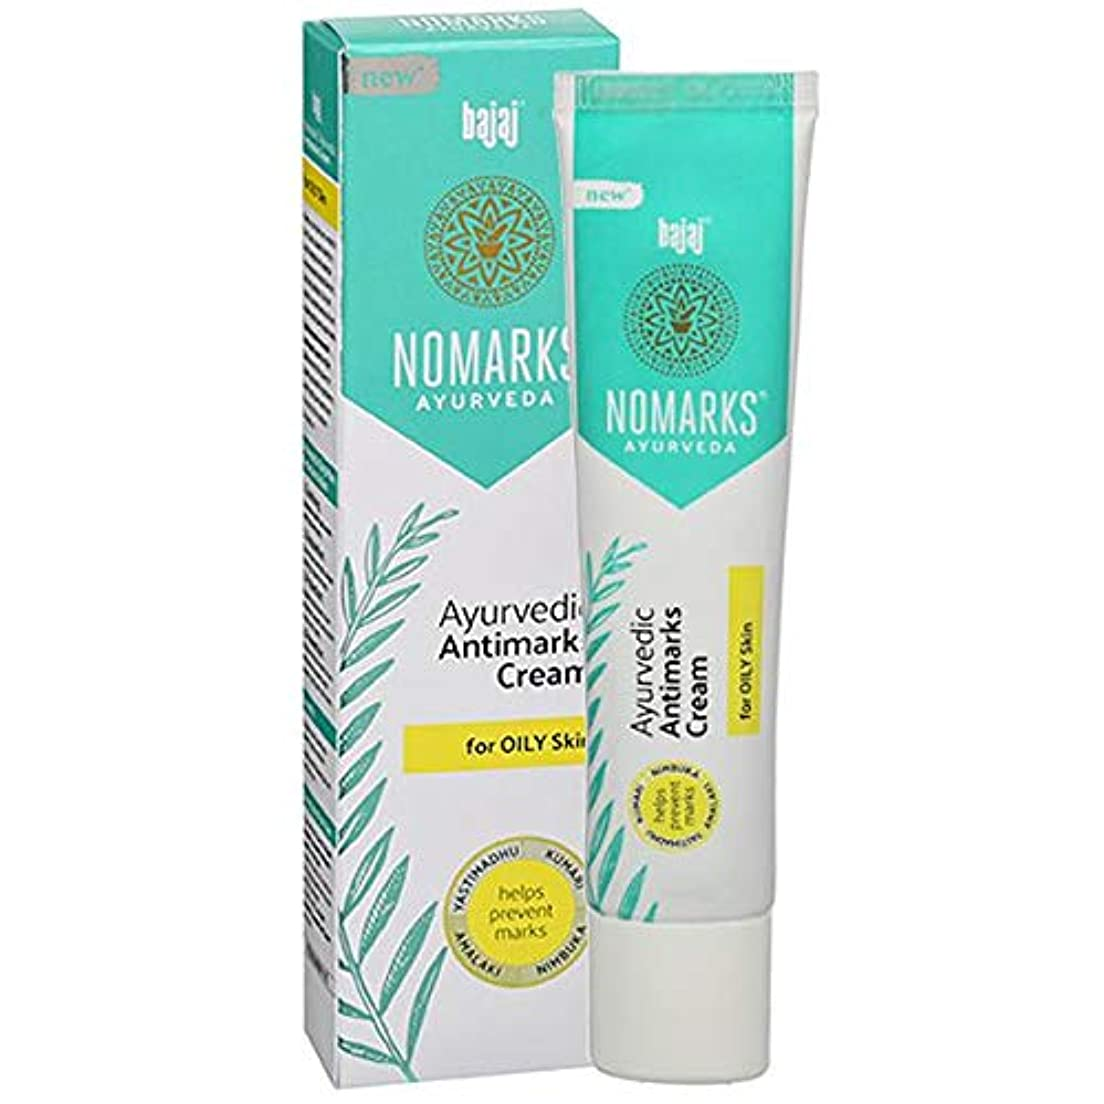 デコレーション共和党ウェーハBajaj Nomarks For oily Skin For Pimple - Mark Free Glowing Fairness with Emblica Aloe & Lemonエンブリカアロエ&レモンマーク無料...